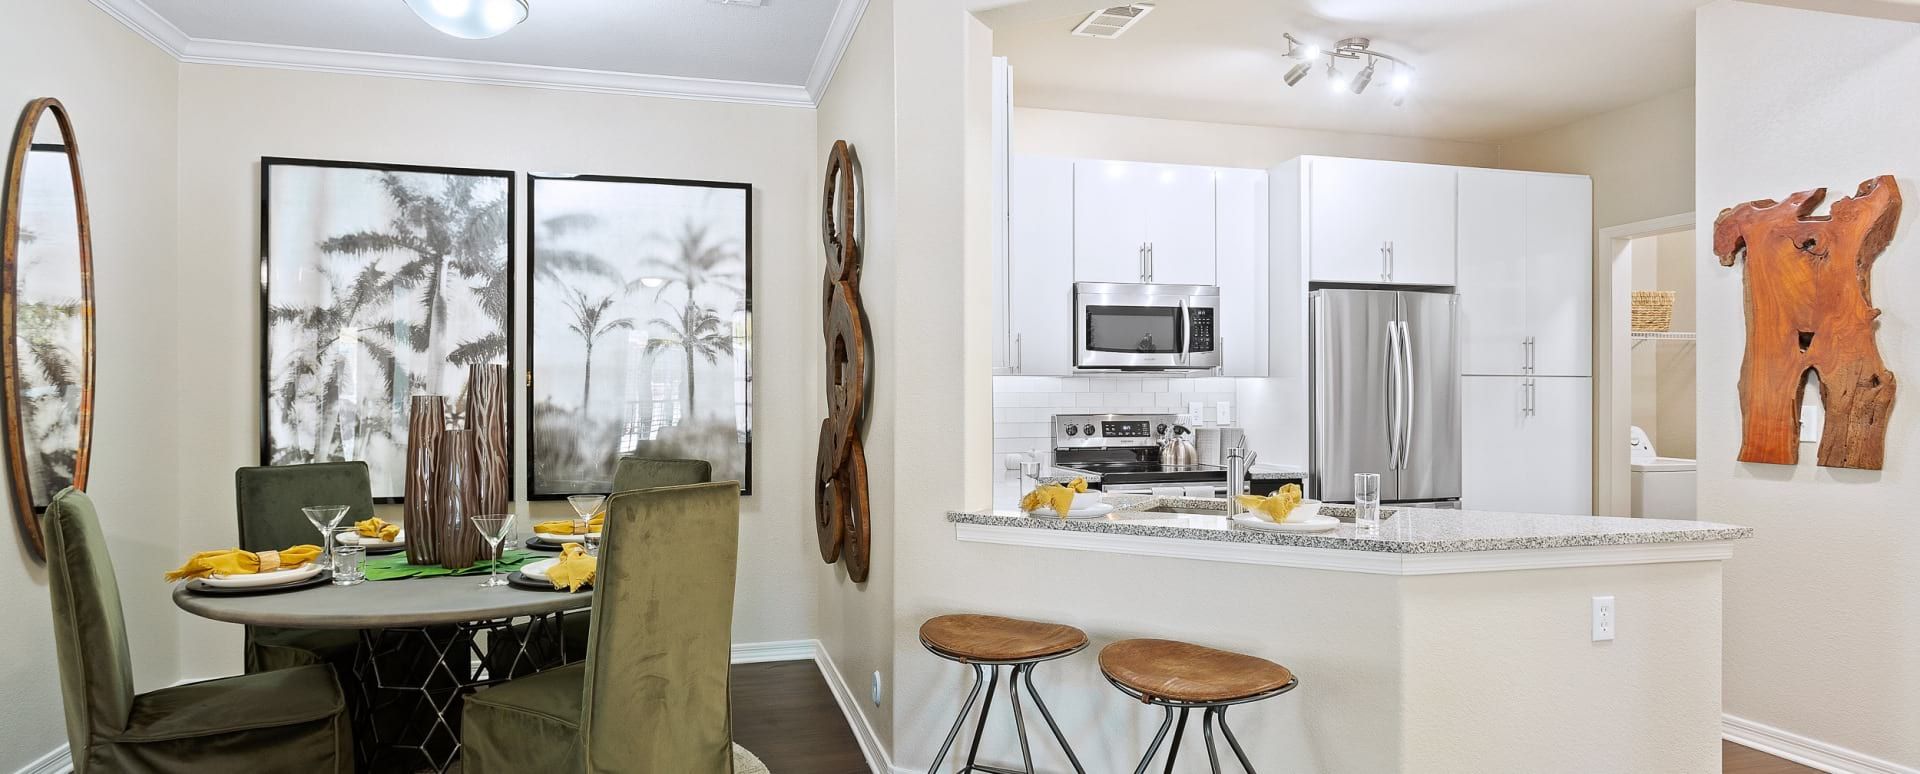 Kitchen and dining area at apartments for rent in Mesa, AZ